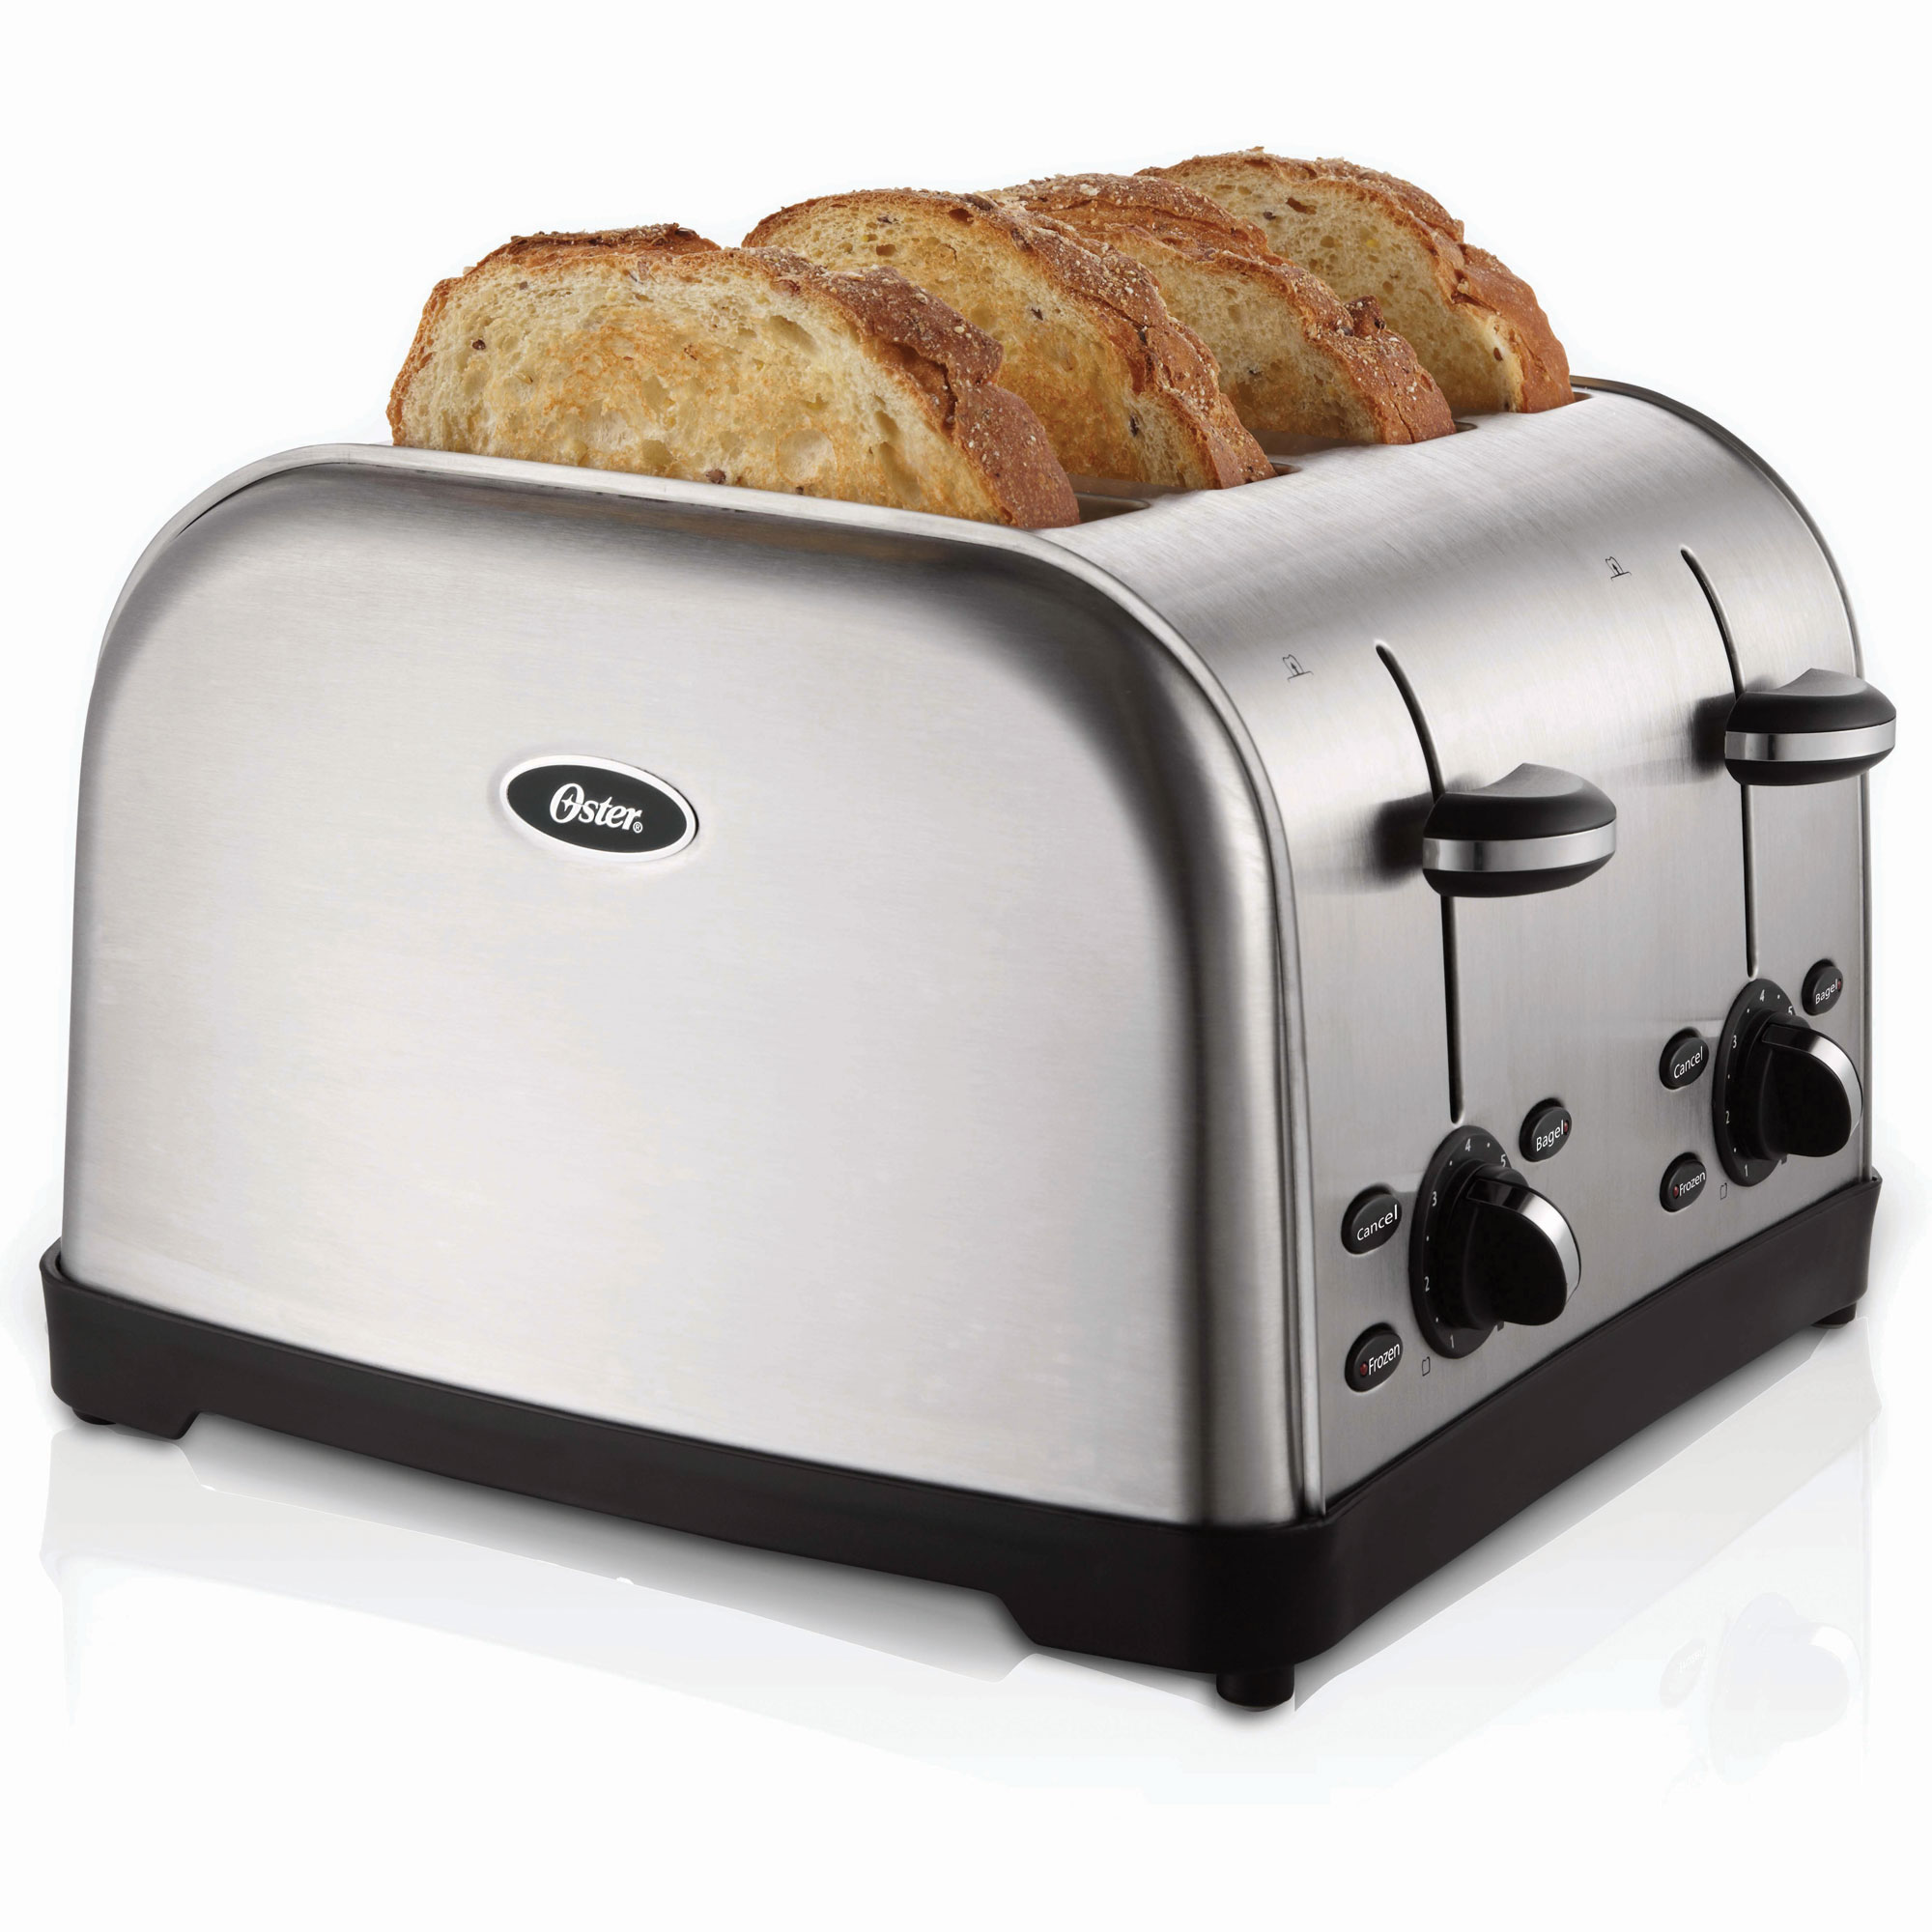 Sunbeam TSSTTRWF4S-SHP Oster 4 Slice Extra-Wide Slot Toaster Brushed Stainless Steel 2 Per ...